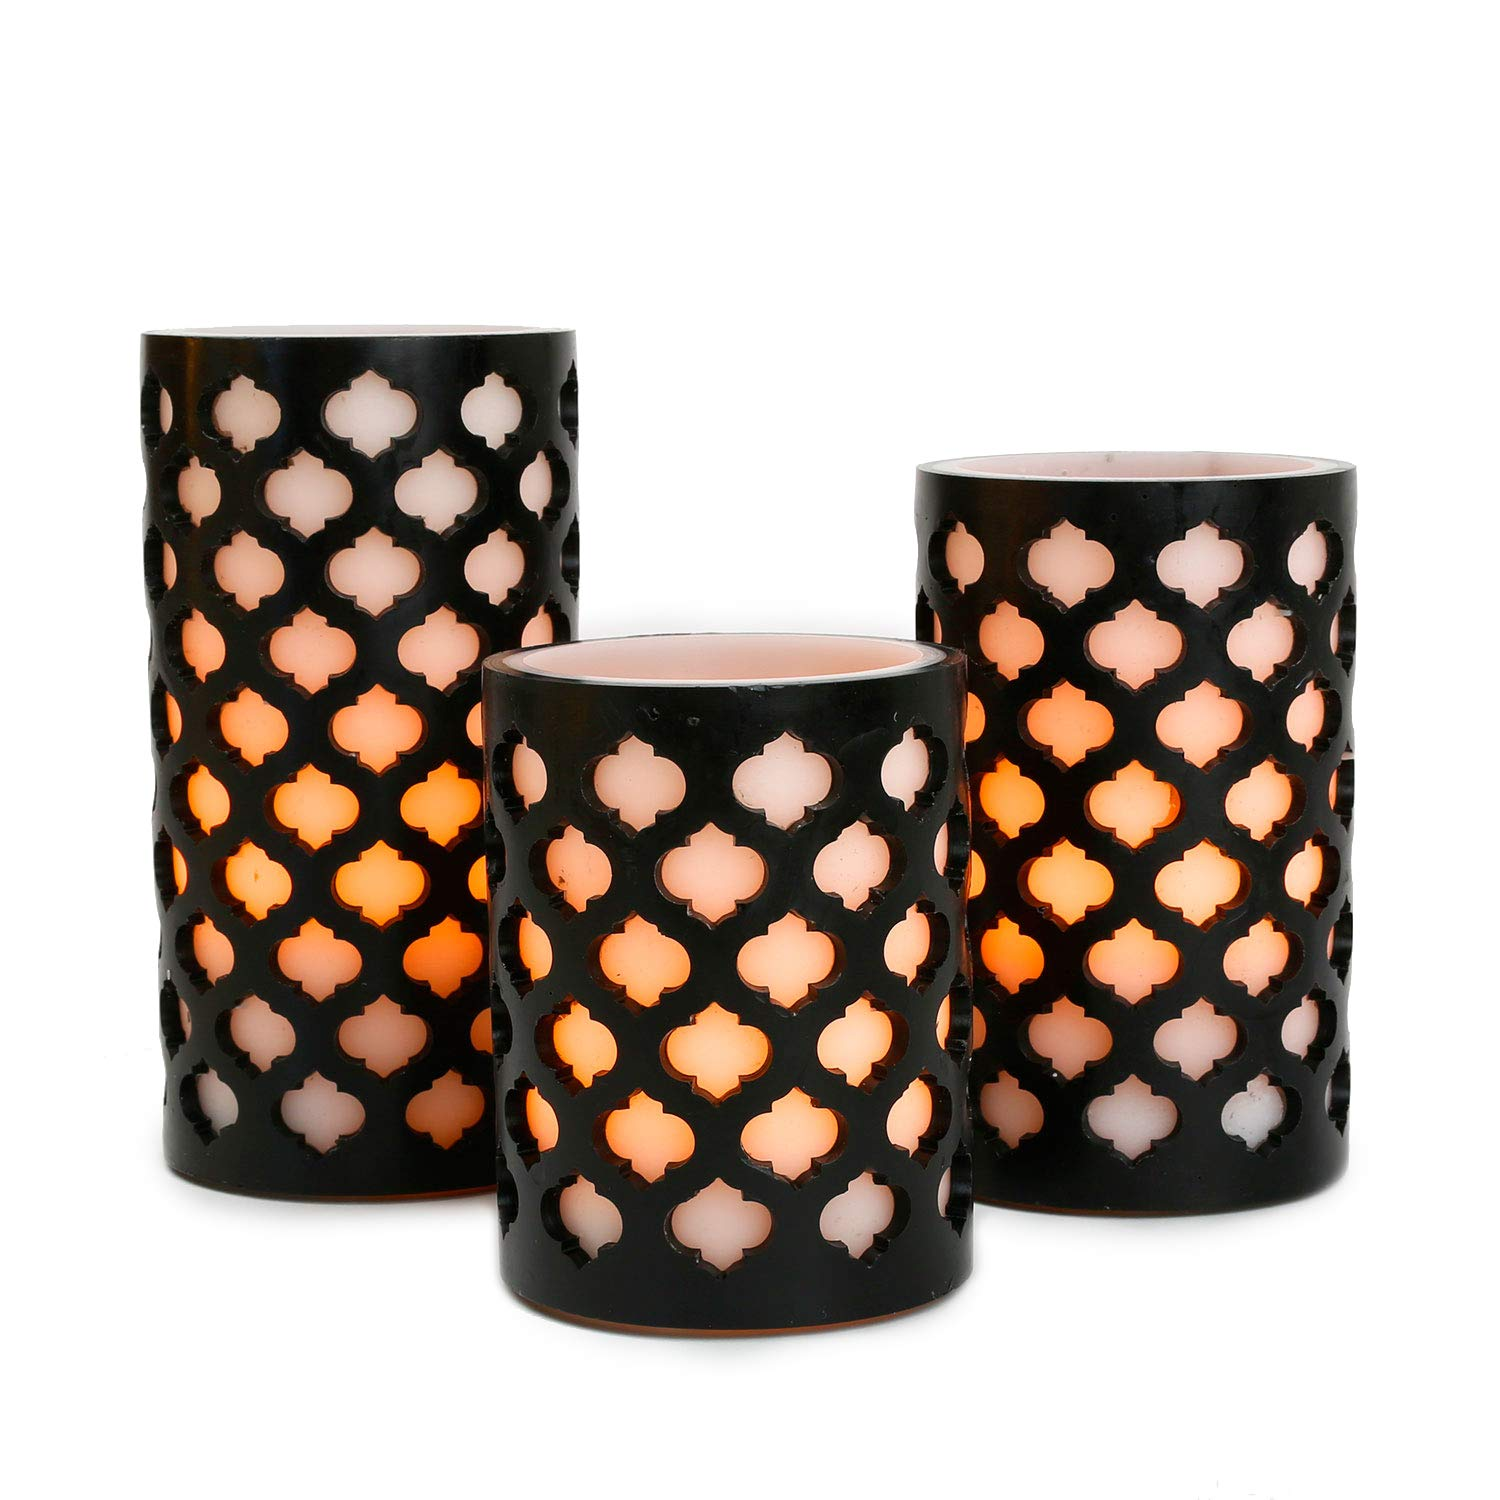 Flameless Wax Pillar Candles with Timer White Black Moroccan Design Warm White LED Glow Batteries Included Set of 3